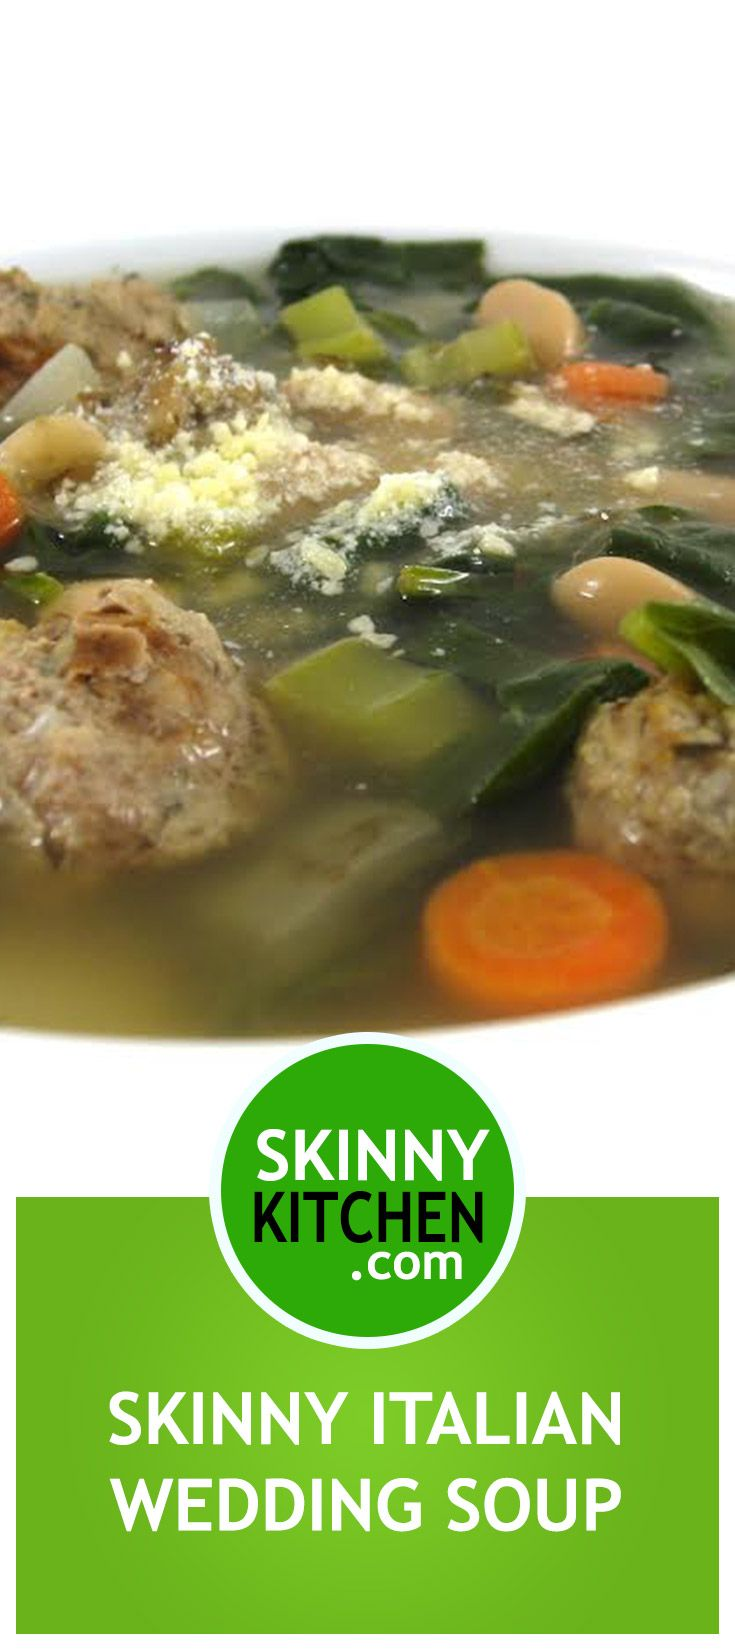 Skinny Italian Wedding Soup Such A Delicious Main Course Each Serving Has